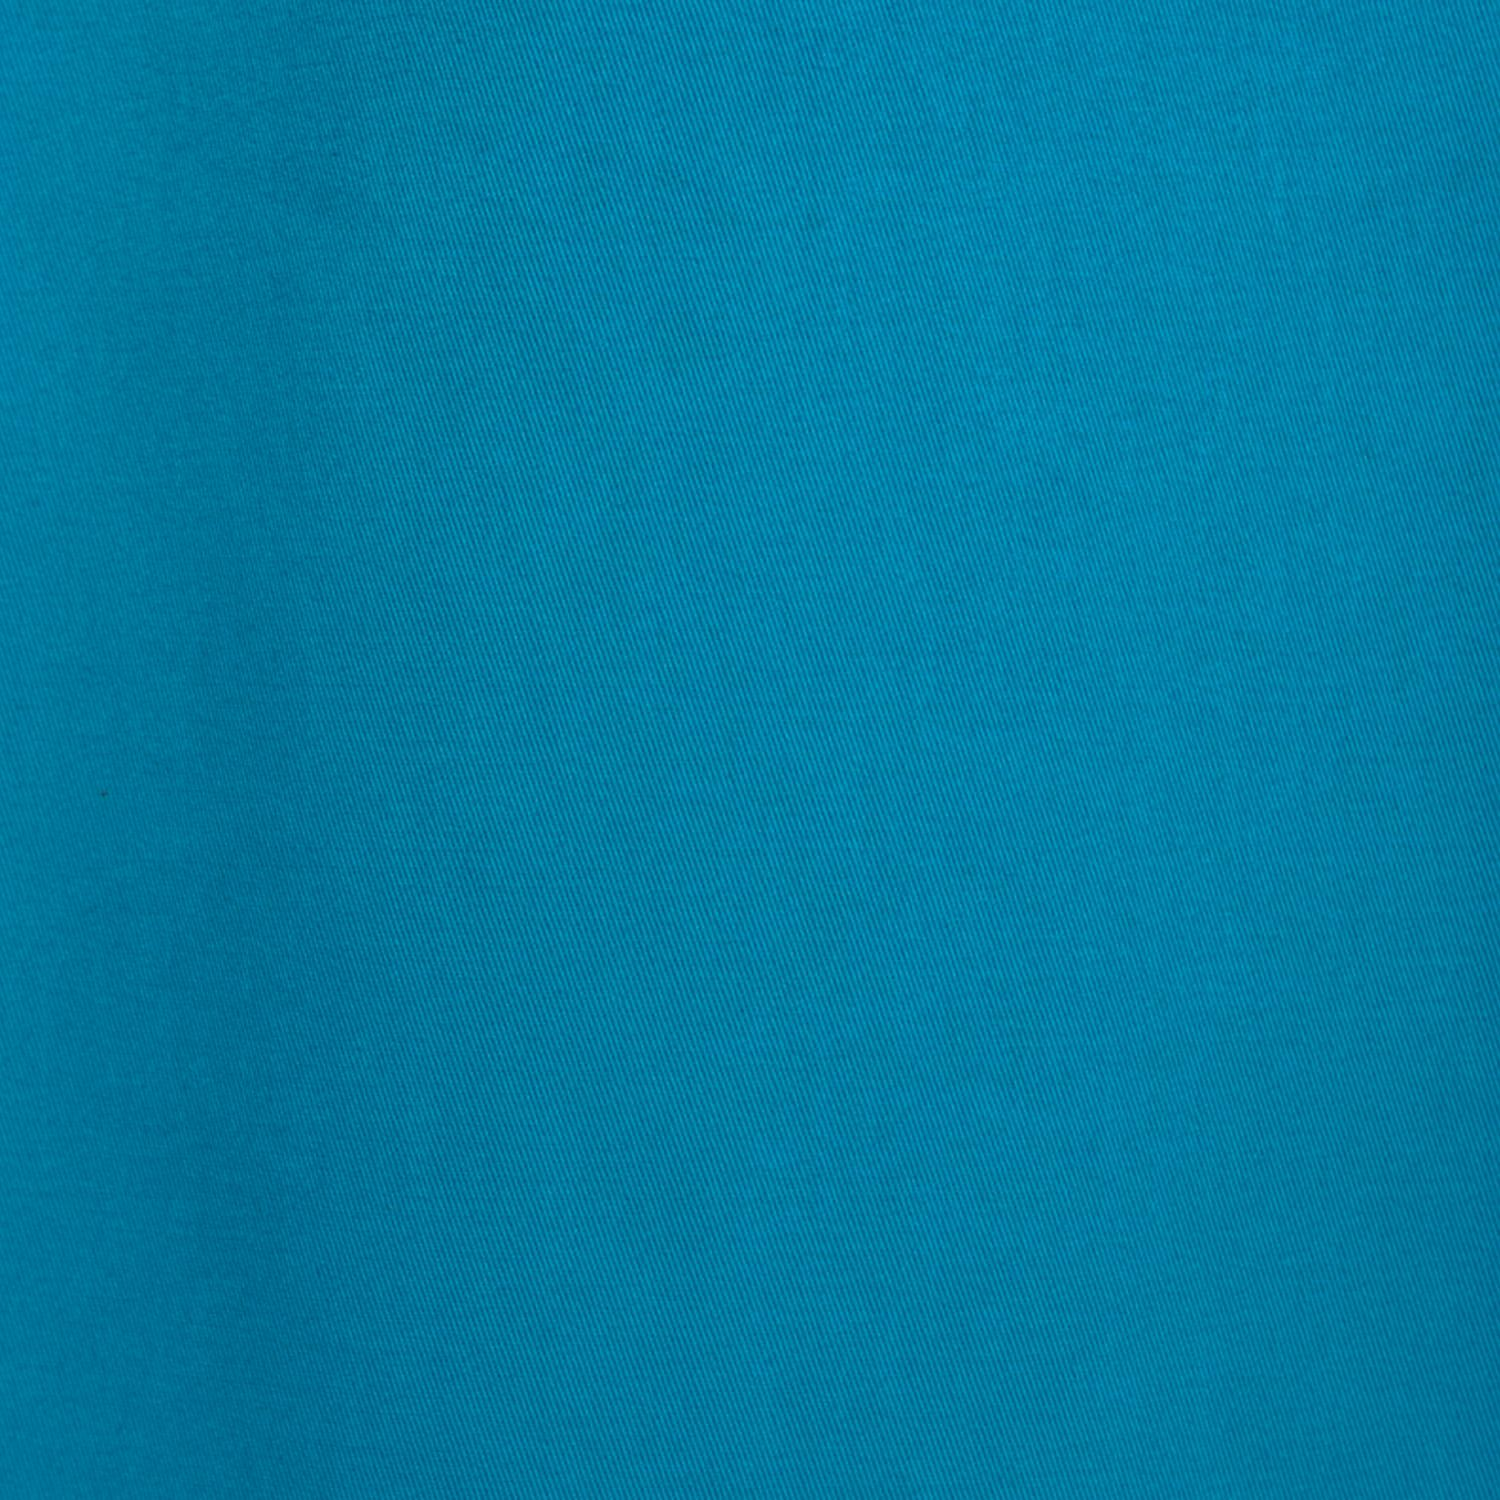 Capri Teal Cotton Twill Swatch